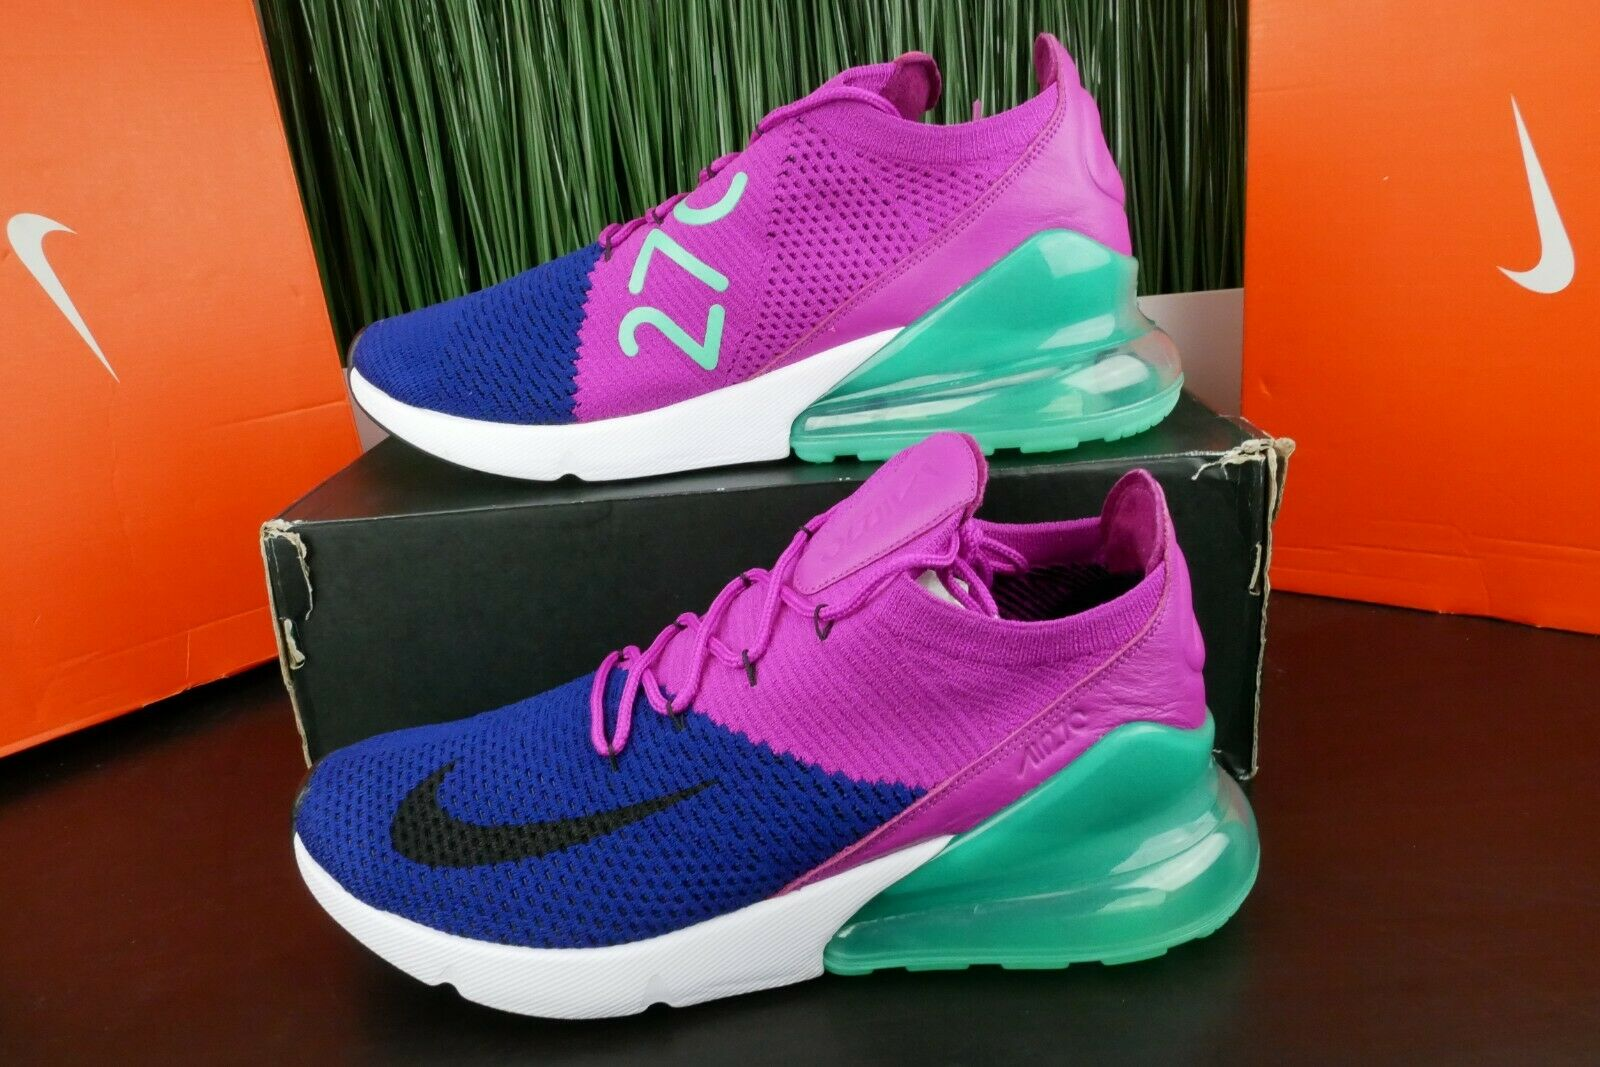 New Nike Air Max 270 Flyknit Royal blueee Fuchsia AO1023-401 Running shoes Size 11